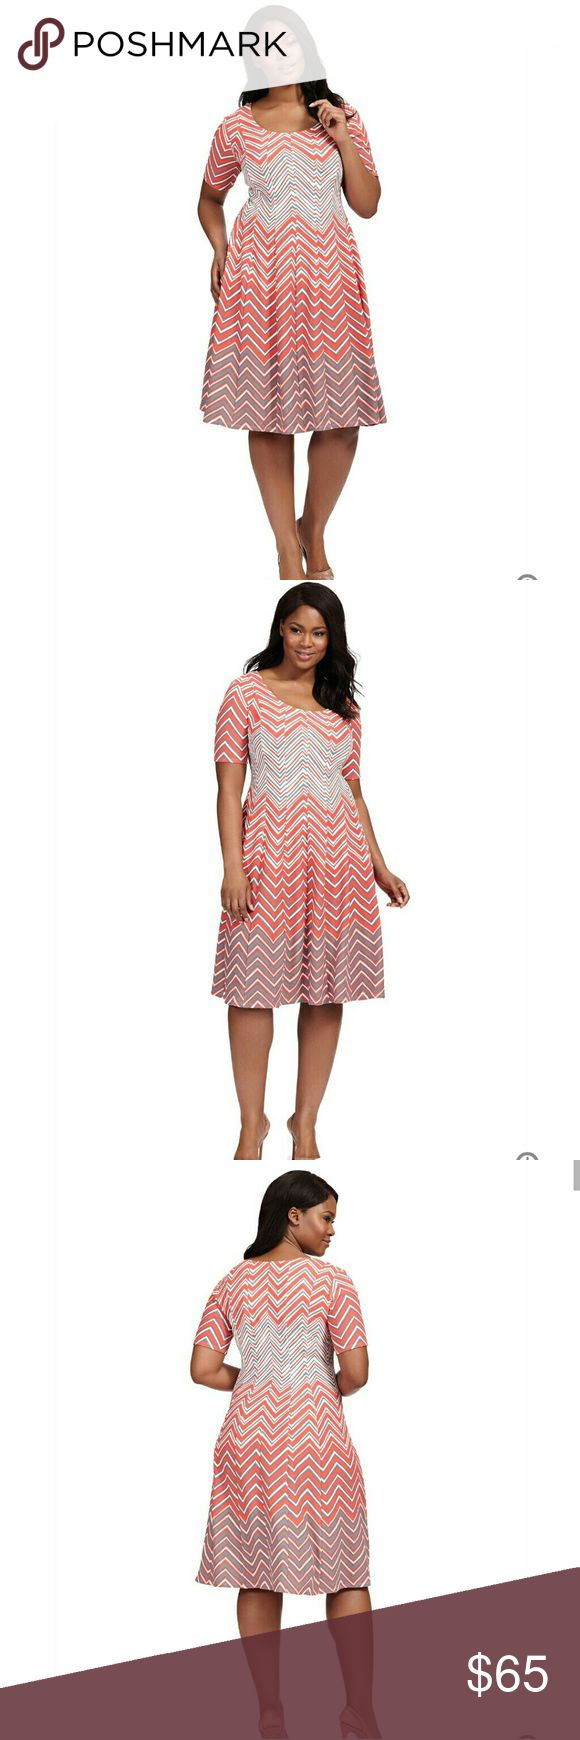 Robbie Bee Coral Chevron Fit & Flare Dress Ponte knit fit and flare dress with scoop neck and short sleeves, stretch knit fabric, slip-on design, all over chevron print, unlined. Styled in a coral chevron print, this fit and flare dress from Robbie Bee is a playful and flirty favorite. It becomes a polished go to with Stilettos or simple ballerina Flats. Polyester / Spandex 3250 Robbie Bee Dresses Midi